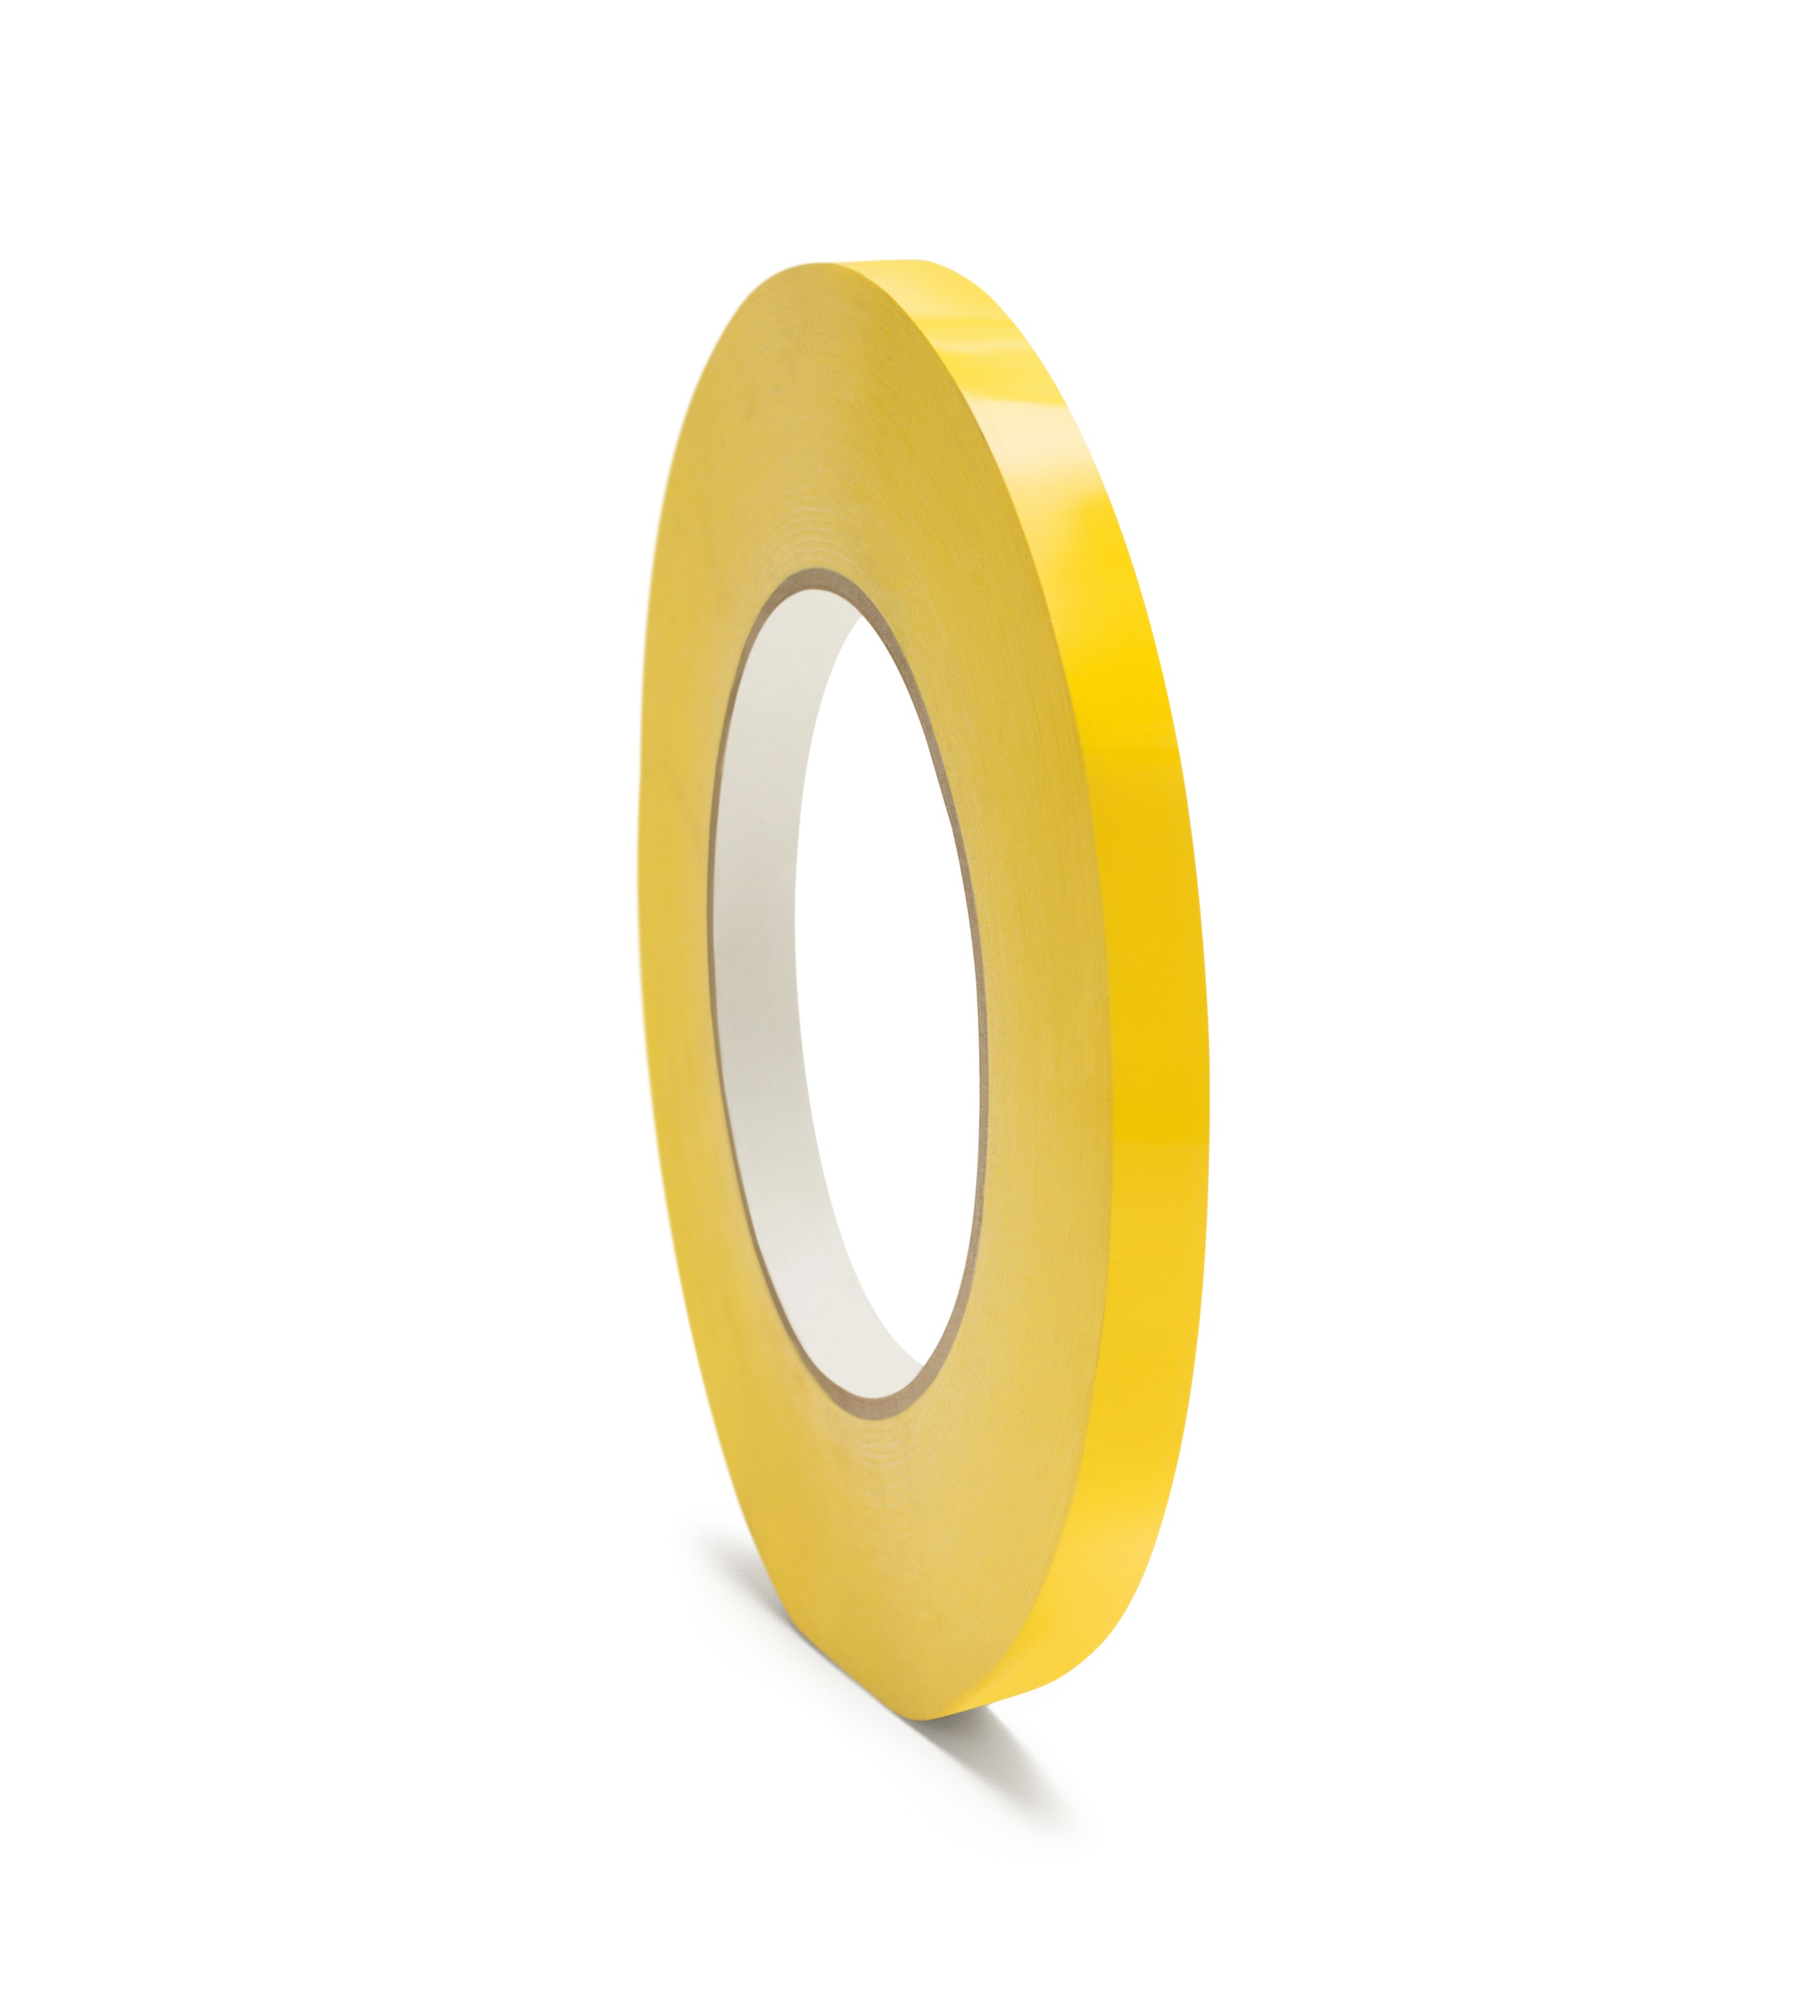 Metallic Tape Mirror Tape Duct Tape DIY Decorative Tapes 2.4 Inches x 55 Yar...